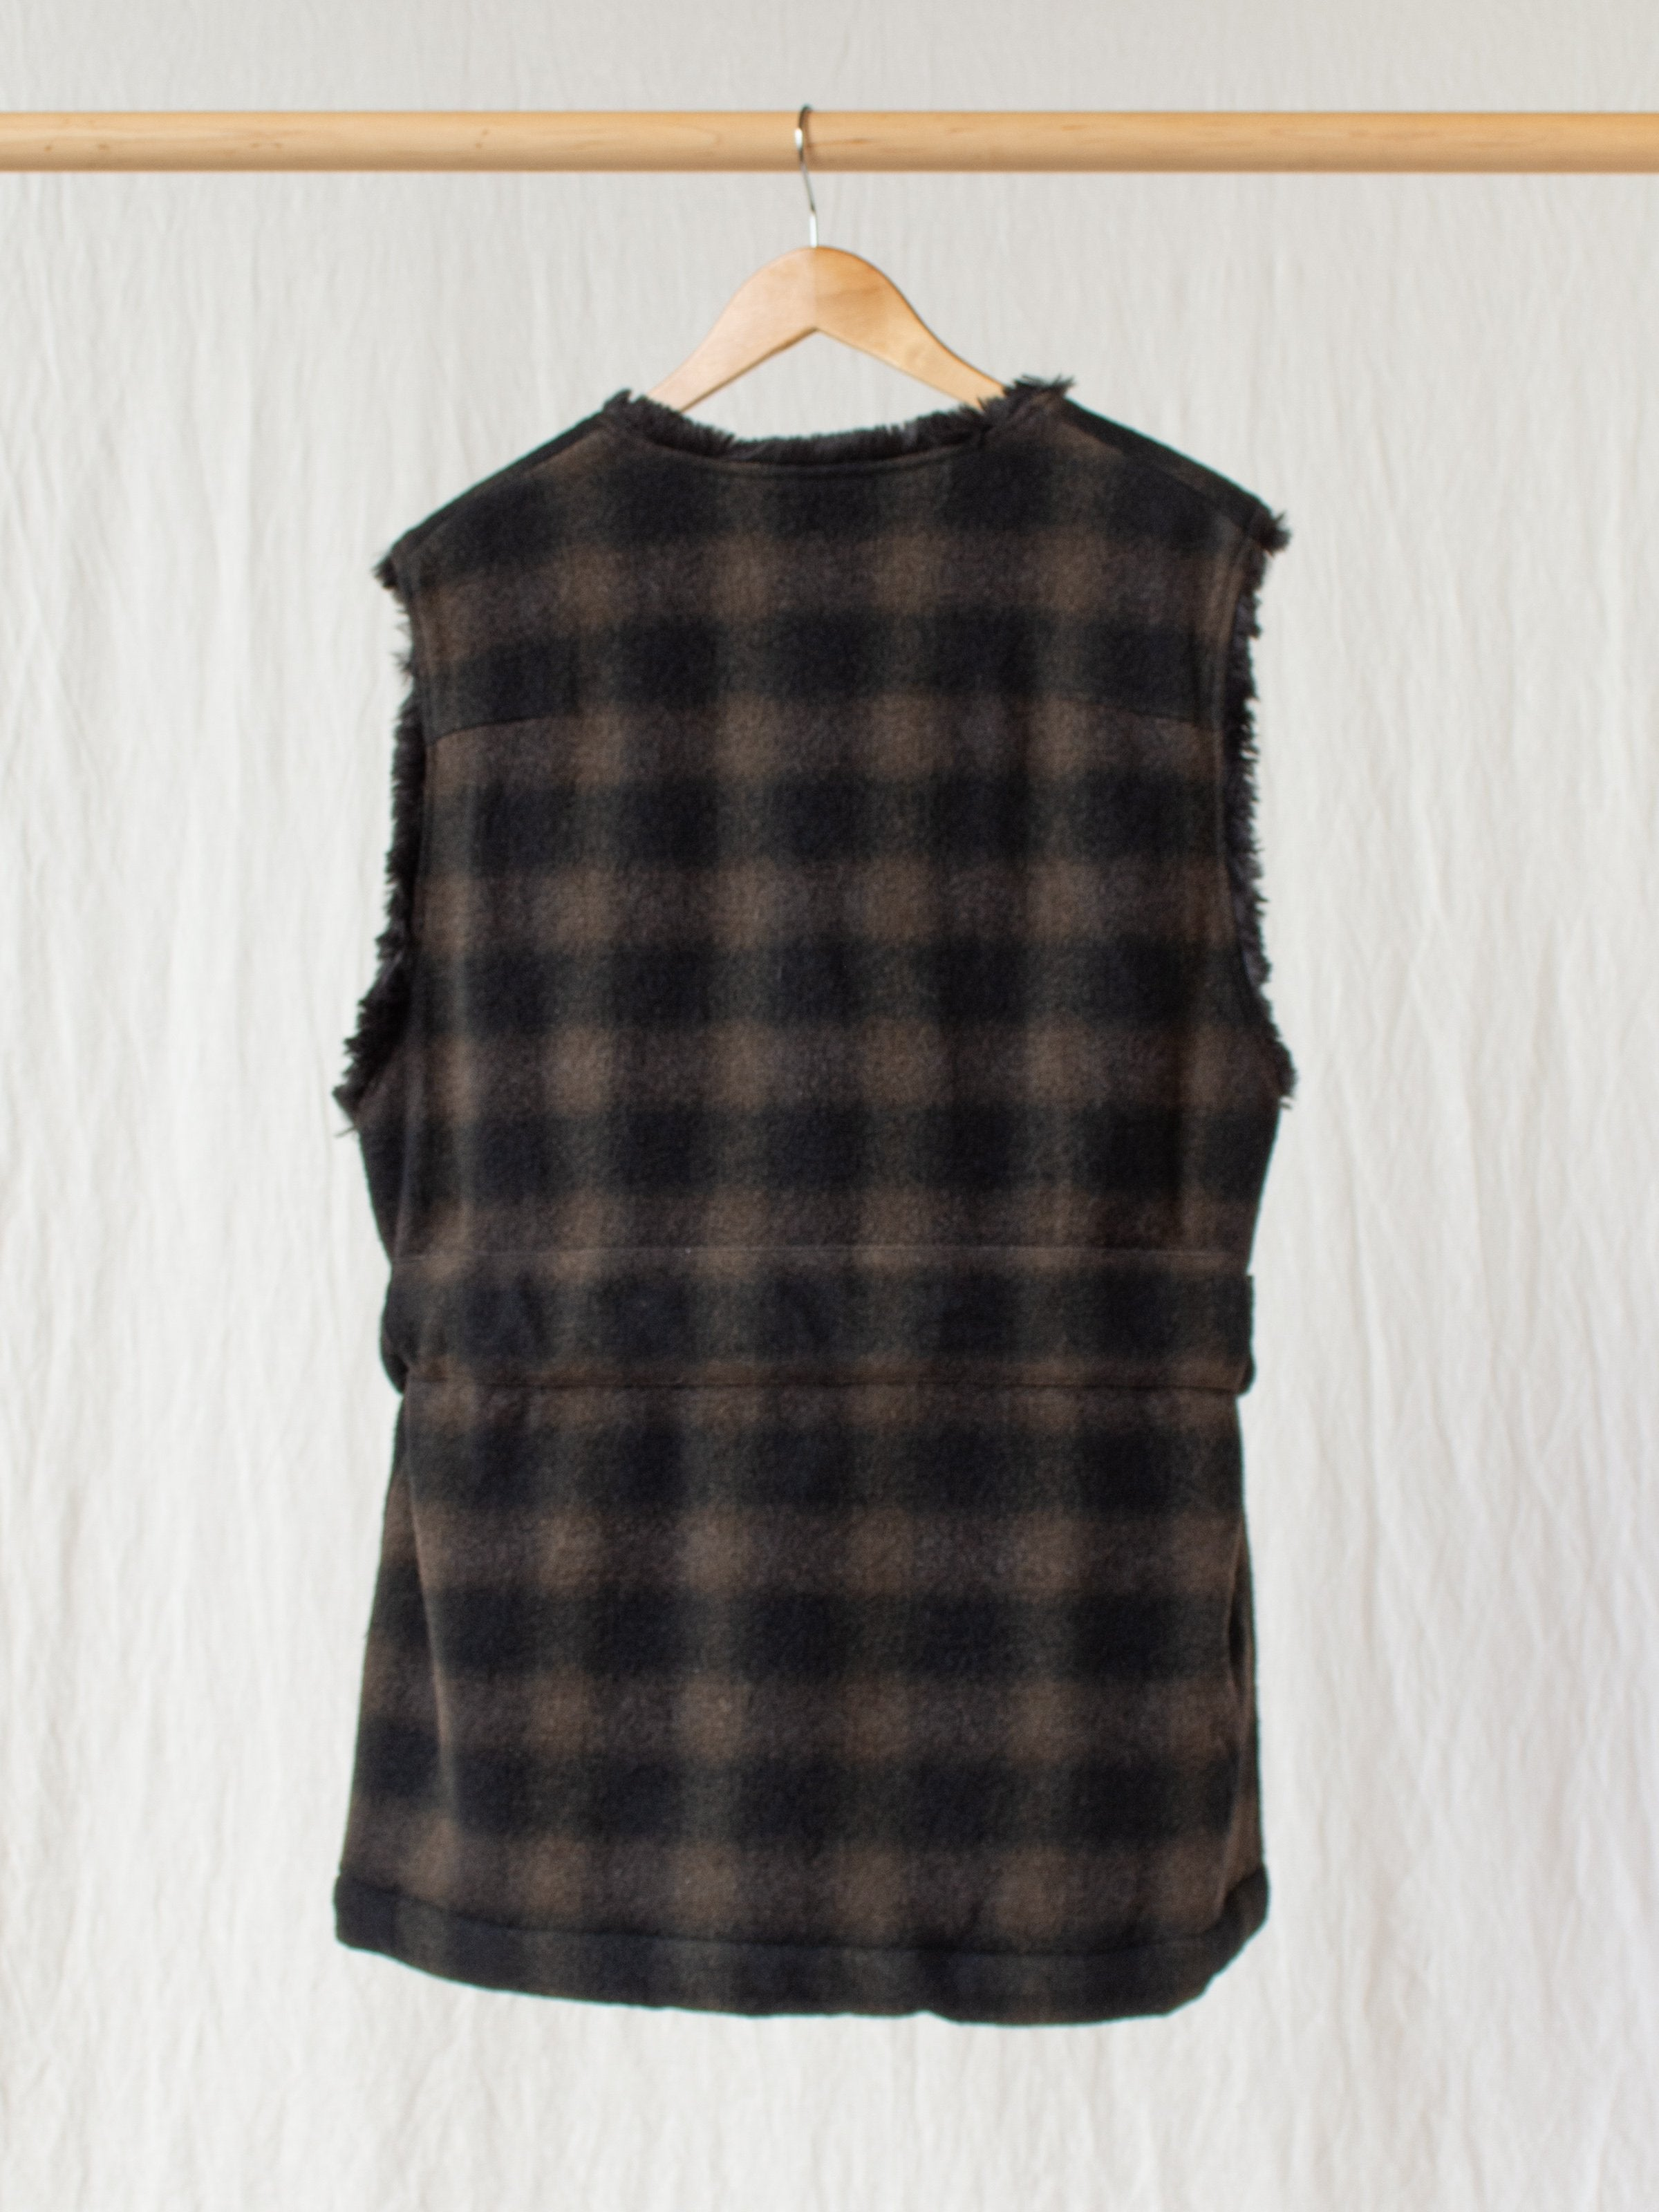 Namu Shop - ts(s) Boa Lined Belted Vest - Ombre Plaid Wool